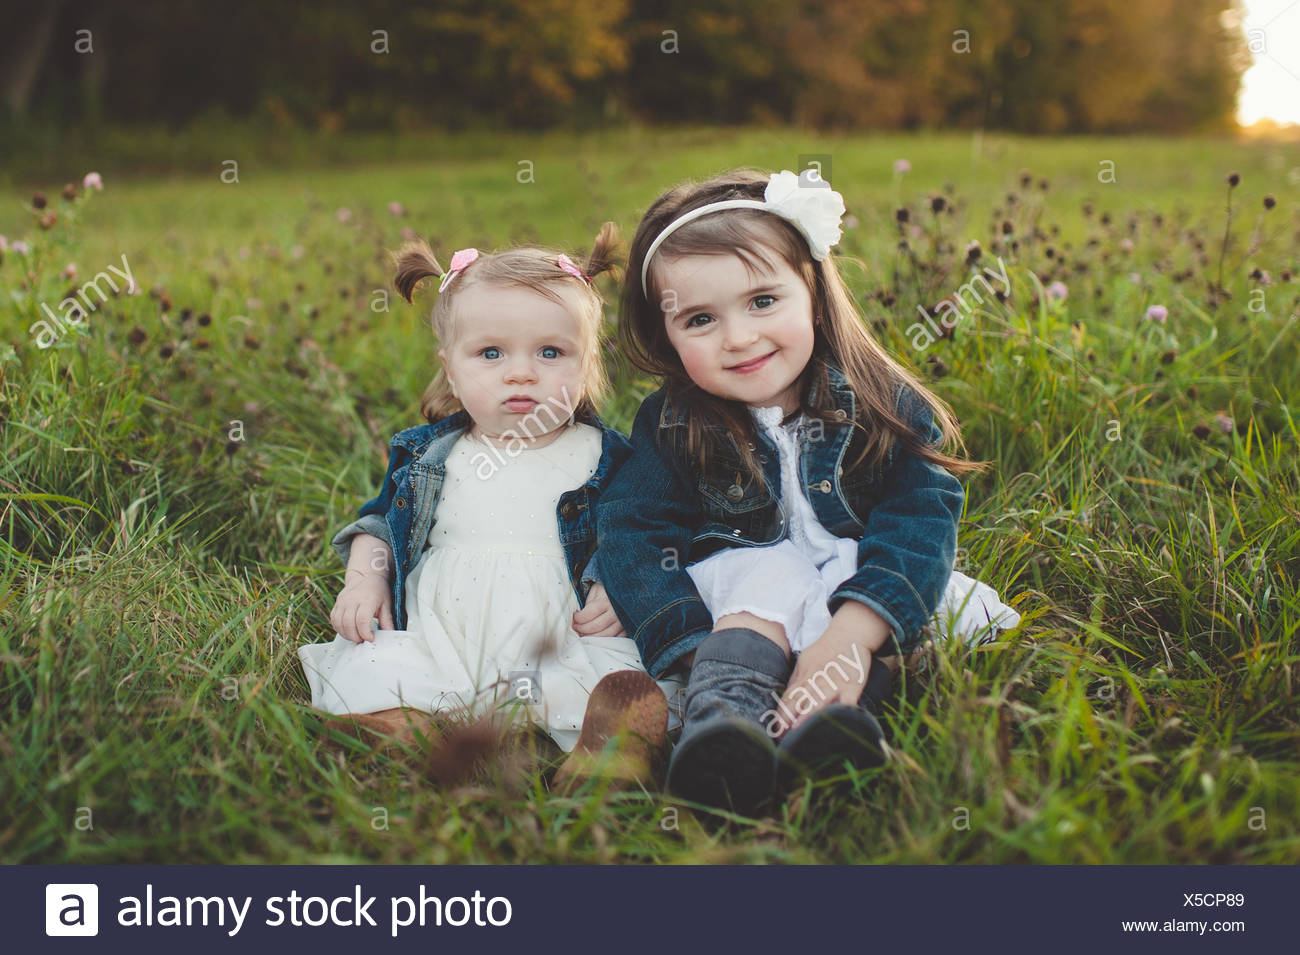 Portrait of young girl and baby sister in field - Stock Image